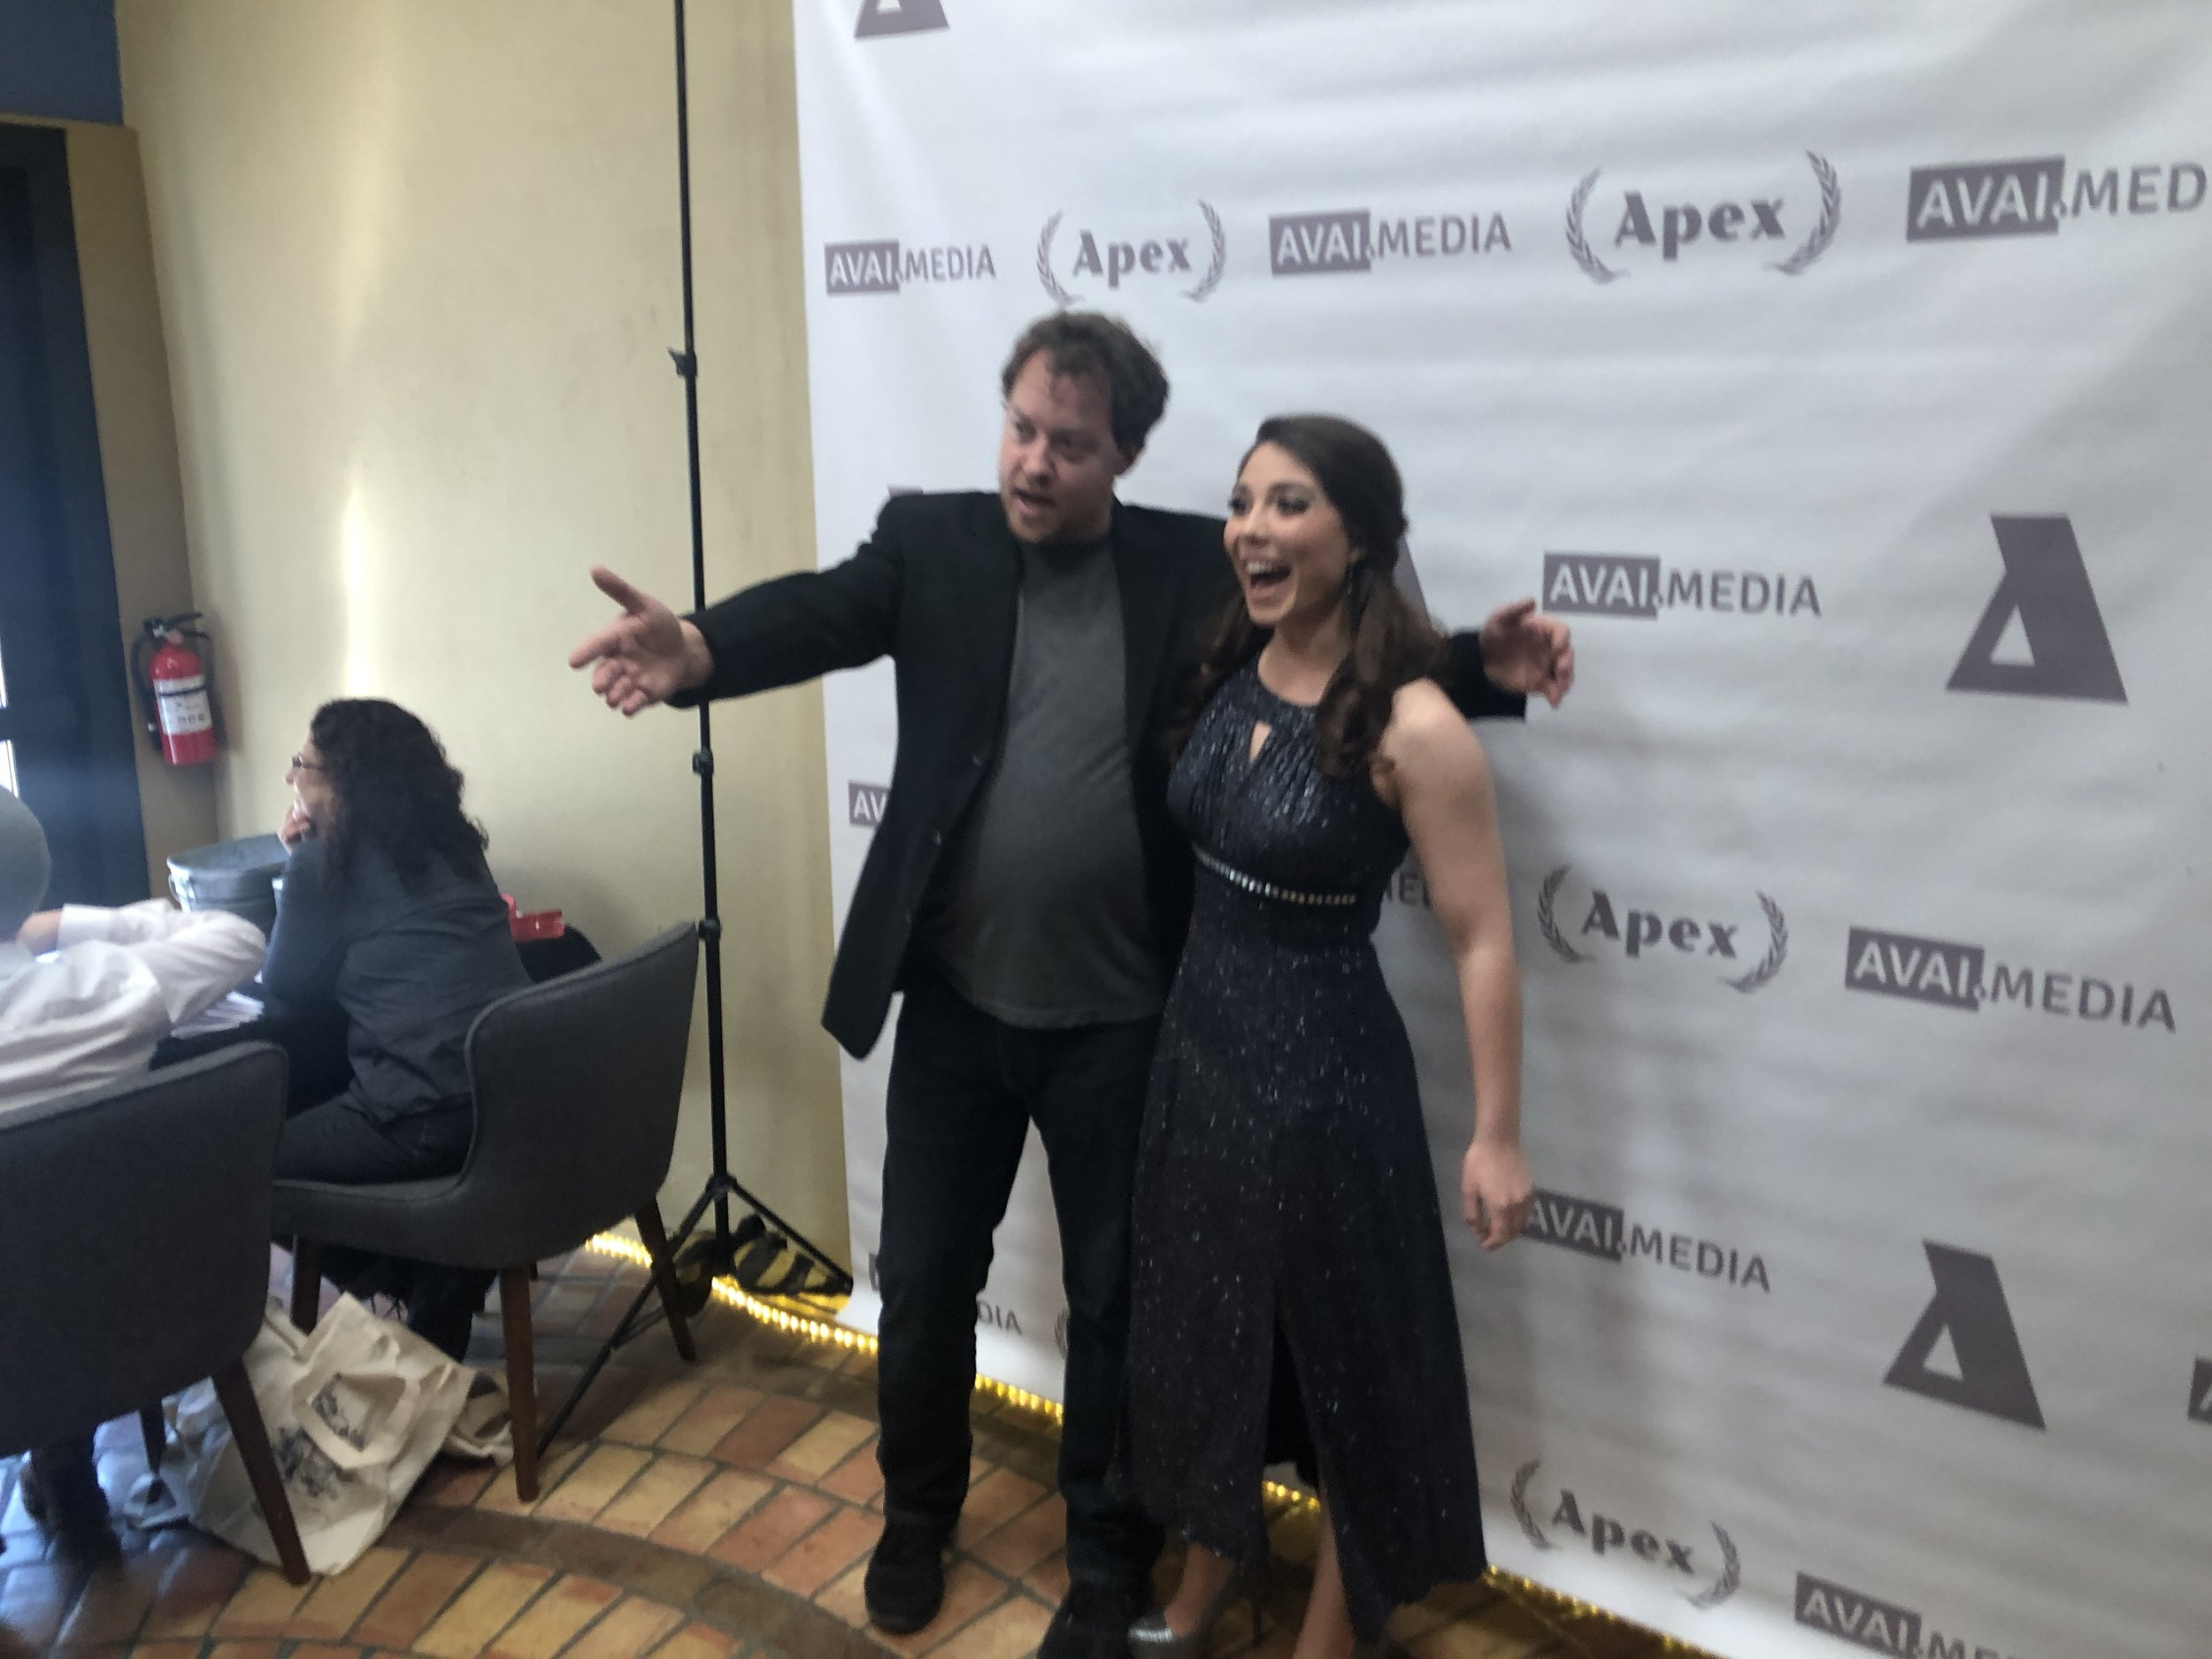 Guests arrive at the 5th annual Apex Film Festival, held February 23 in Tucson.